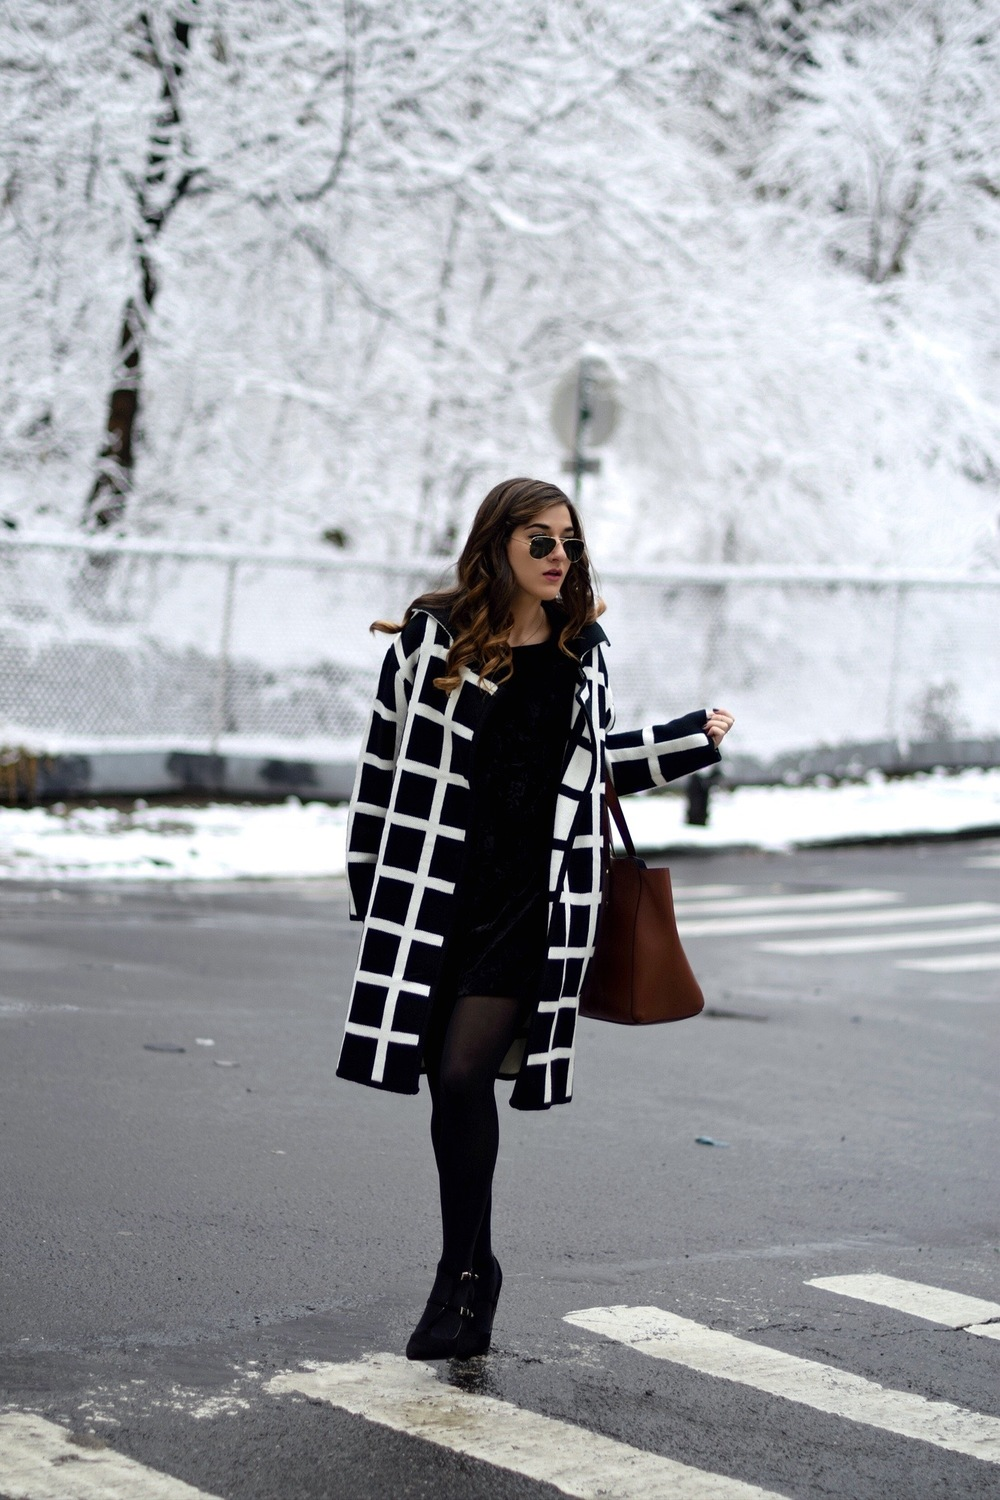 Black and White Windowpane Sweater Trescool Louboutins & Love Fashion Blog Esther Santer NYC Street Blogger Winter Wear Shop Cozy Layers Zara Black Heels Ivanka Trump Soho Tote Bag Velvet Dress Outfit Inspo OOTD Beauty Model Hair Sunglasses Photoshoot.jpg